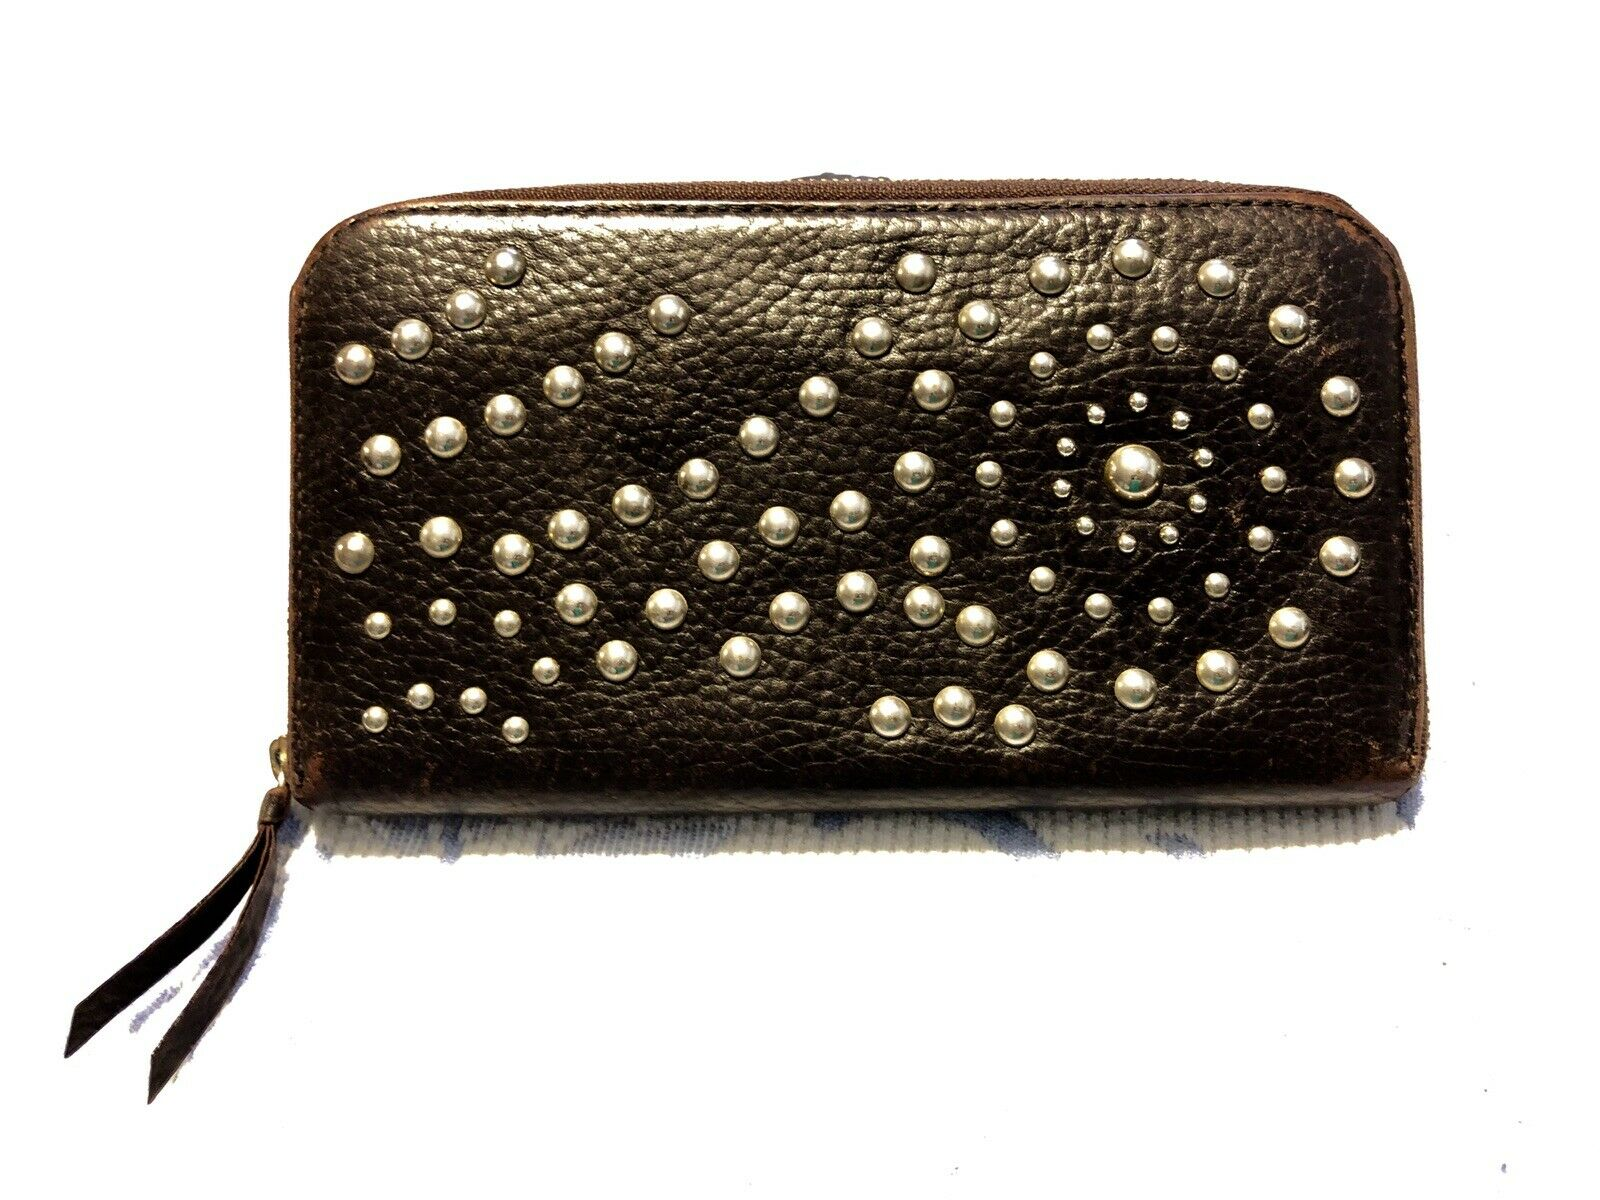 PAUL SMITH Wallet Zip Around BROWN Leather Clutch with Silver STUDS